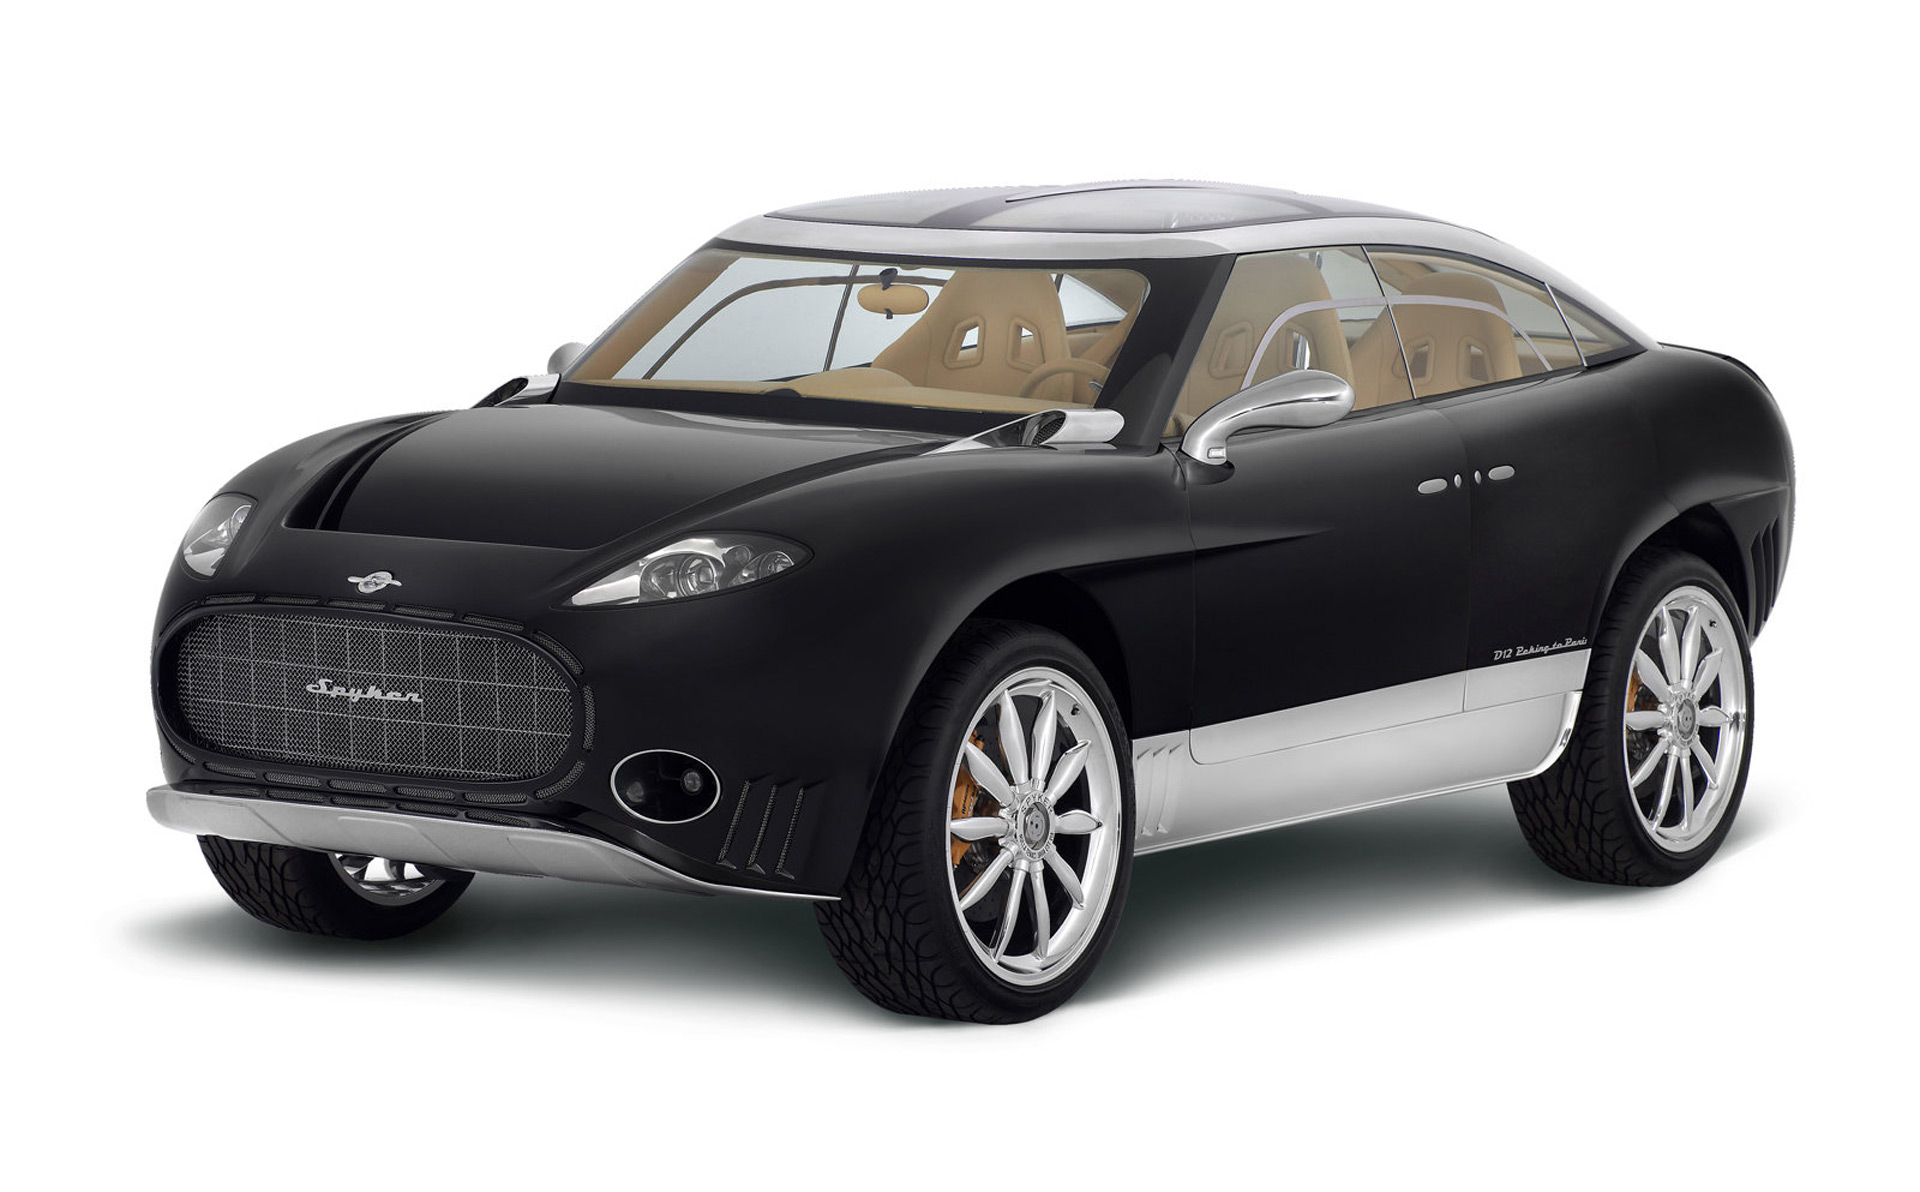 2017 Audi A4 Tesla Model 3 Spyker Electric Suv What S